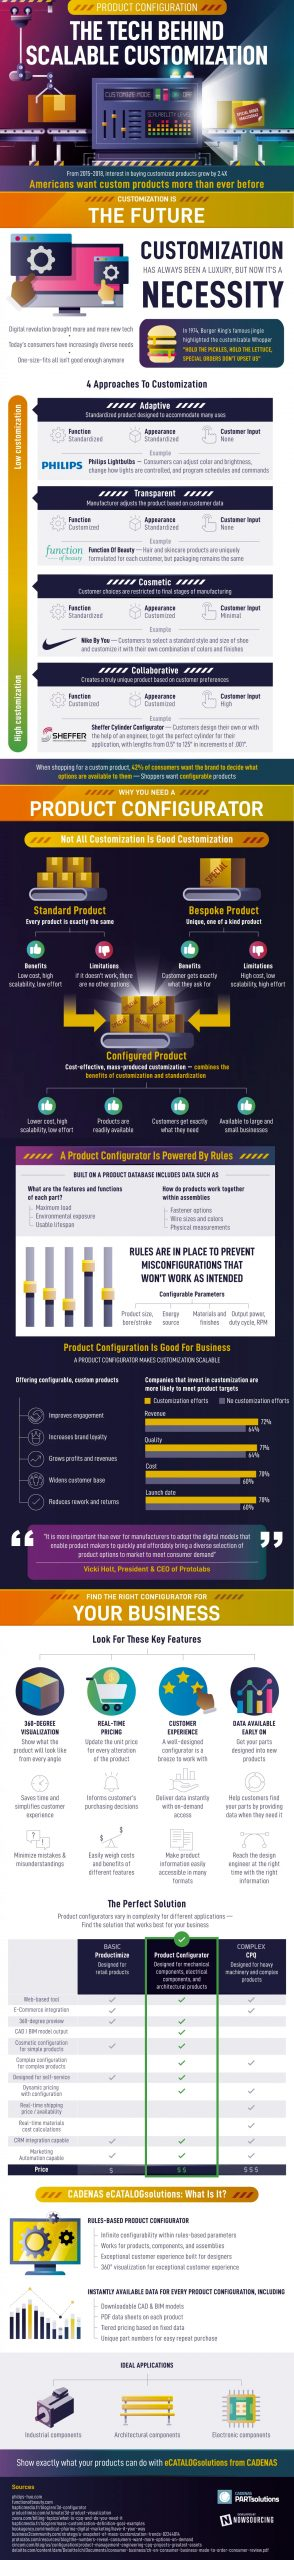 product configuration the tech behind scalable customization infographic